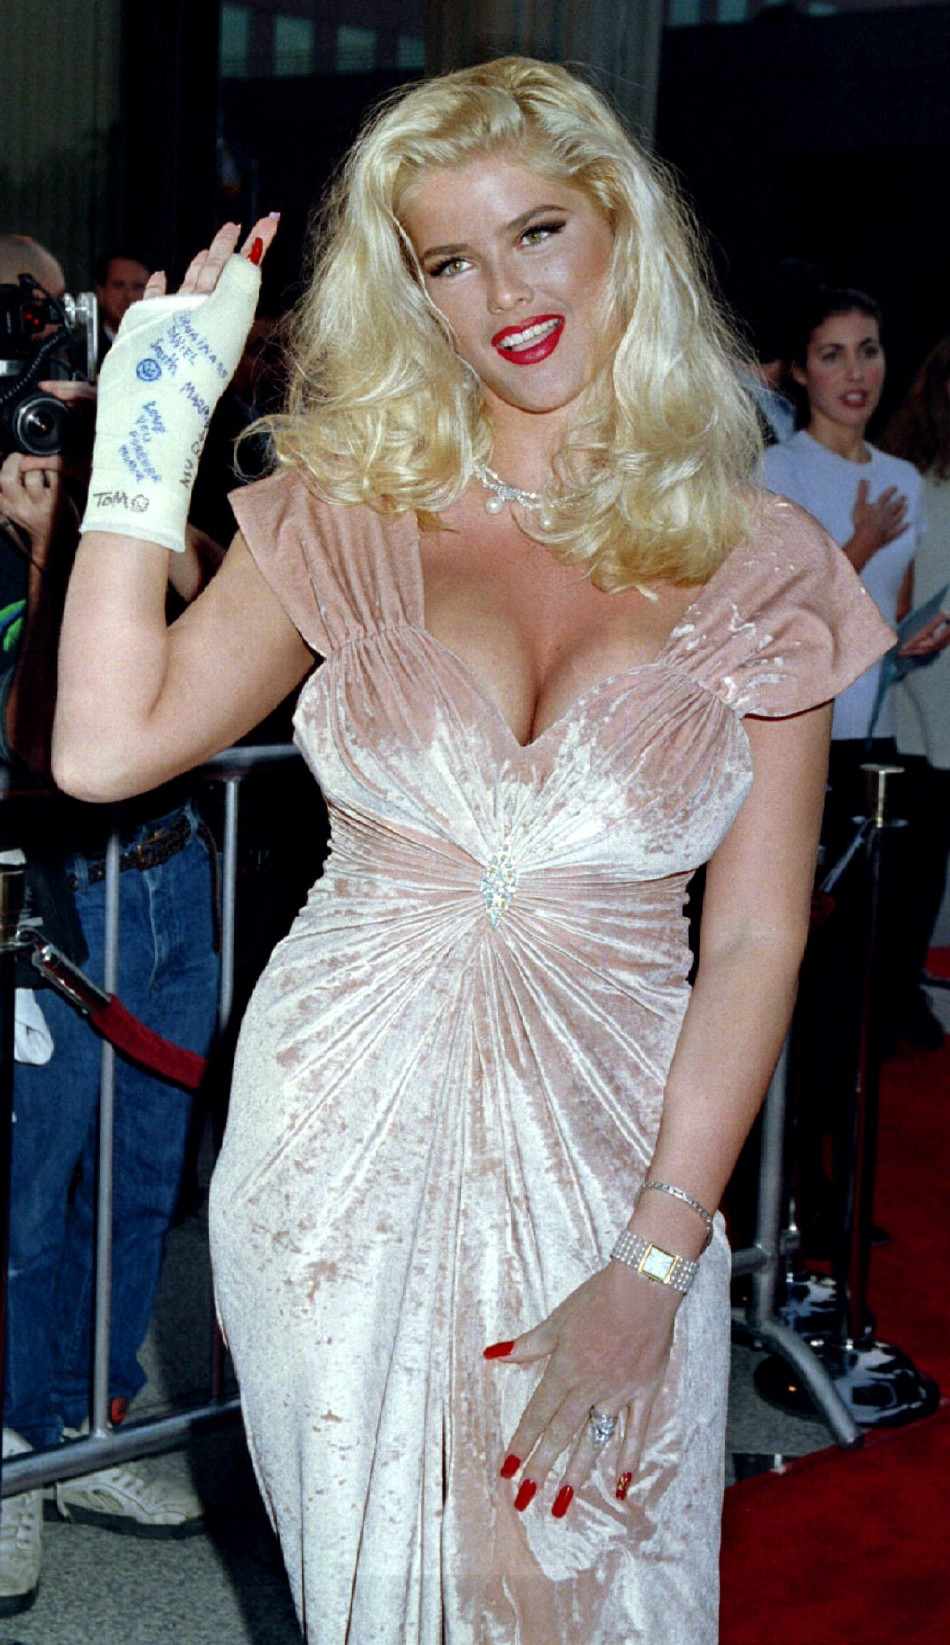 Guess clothing model Anna Nicole Smith poses for photographers with her right hand in a cast as she ..